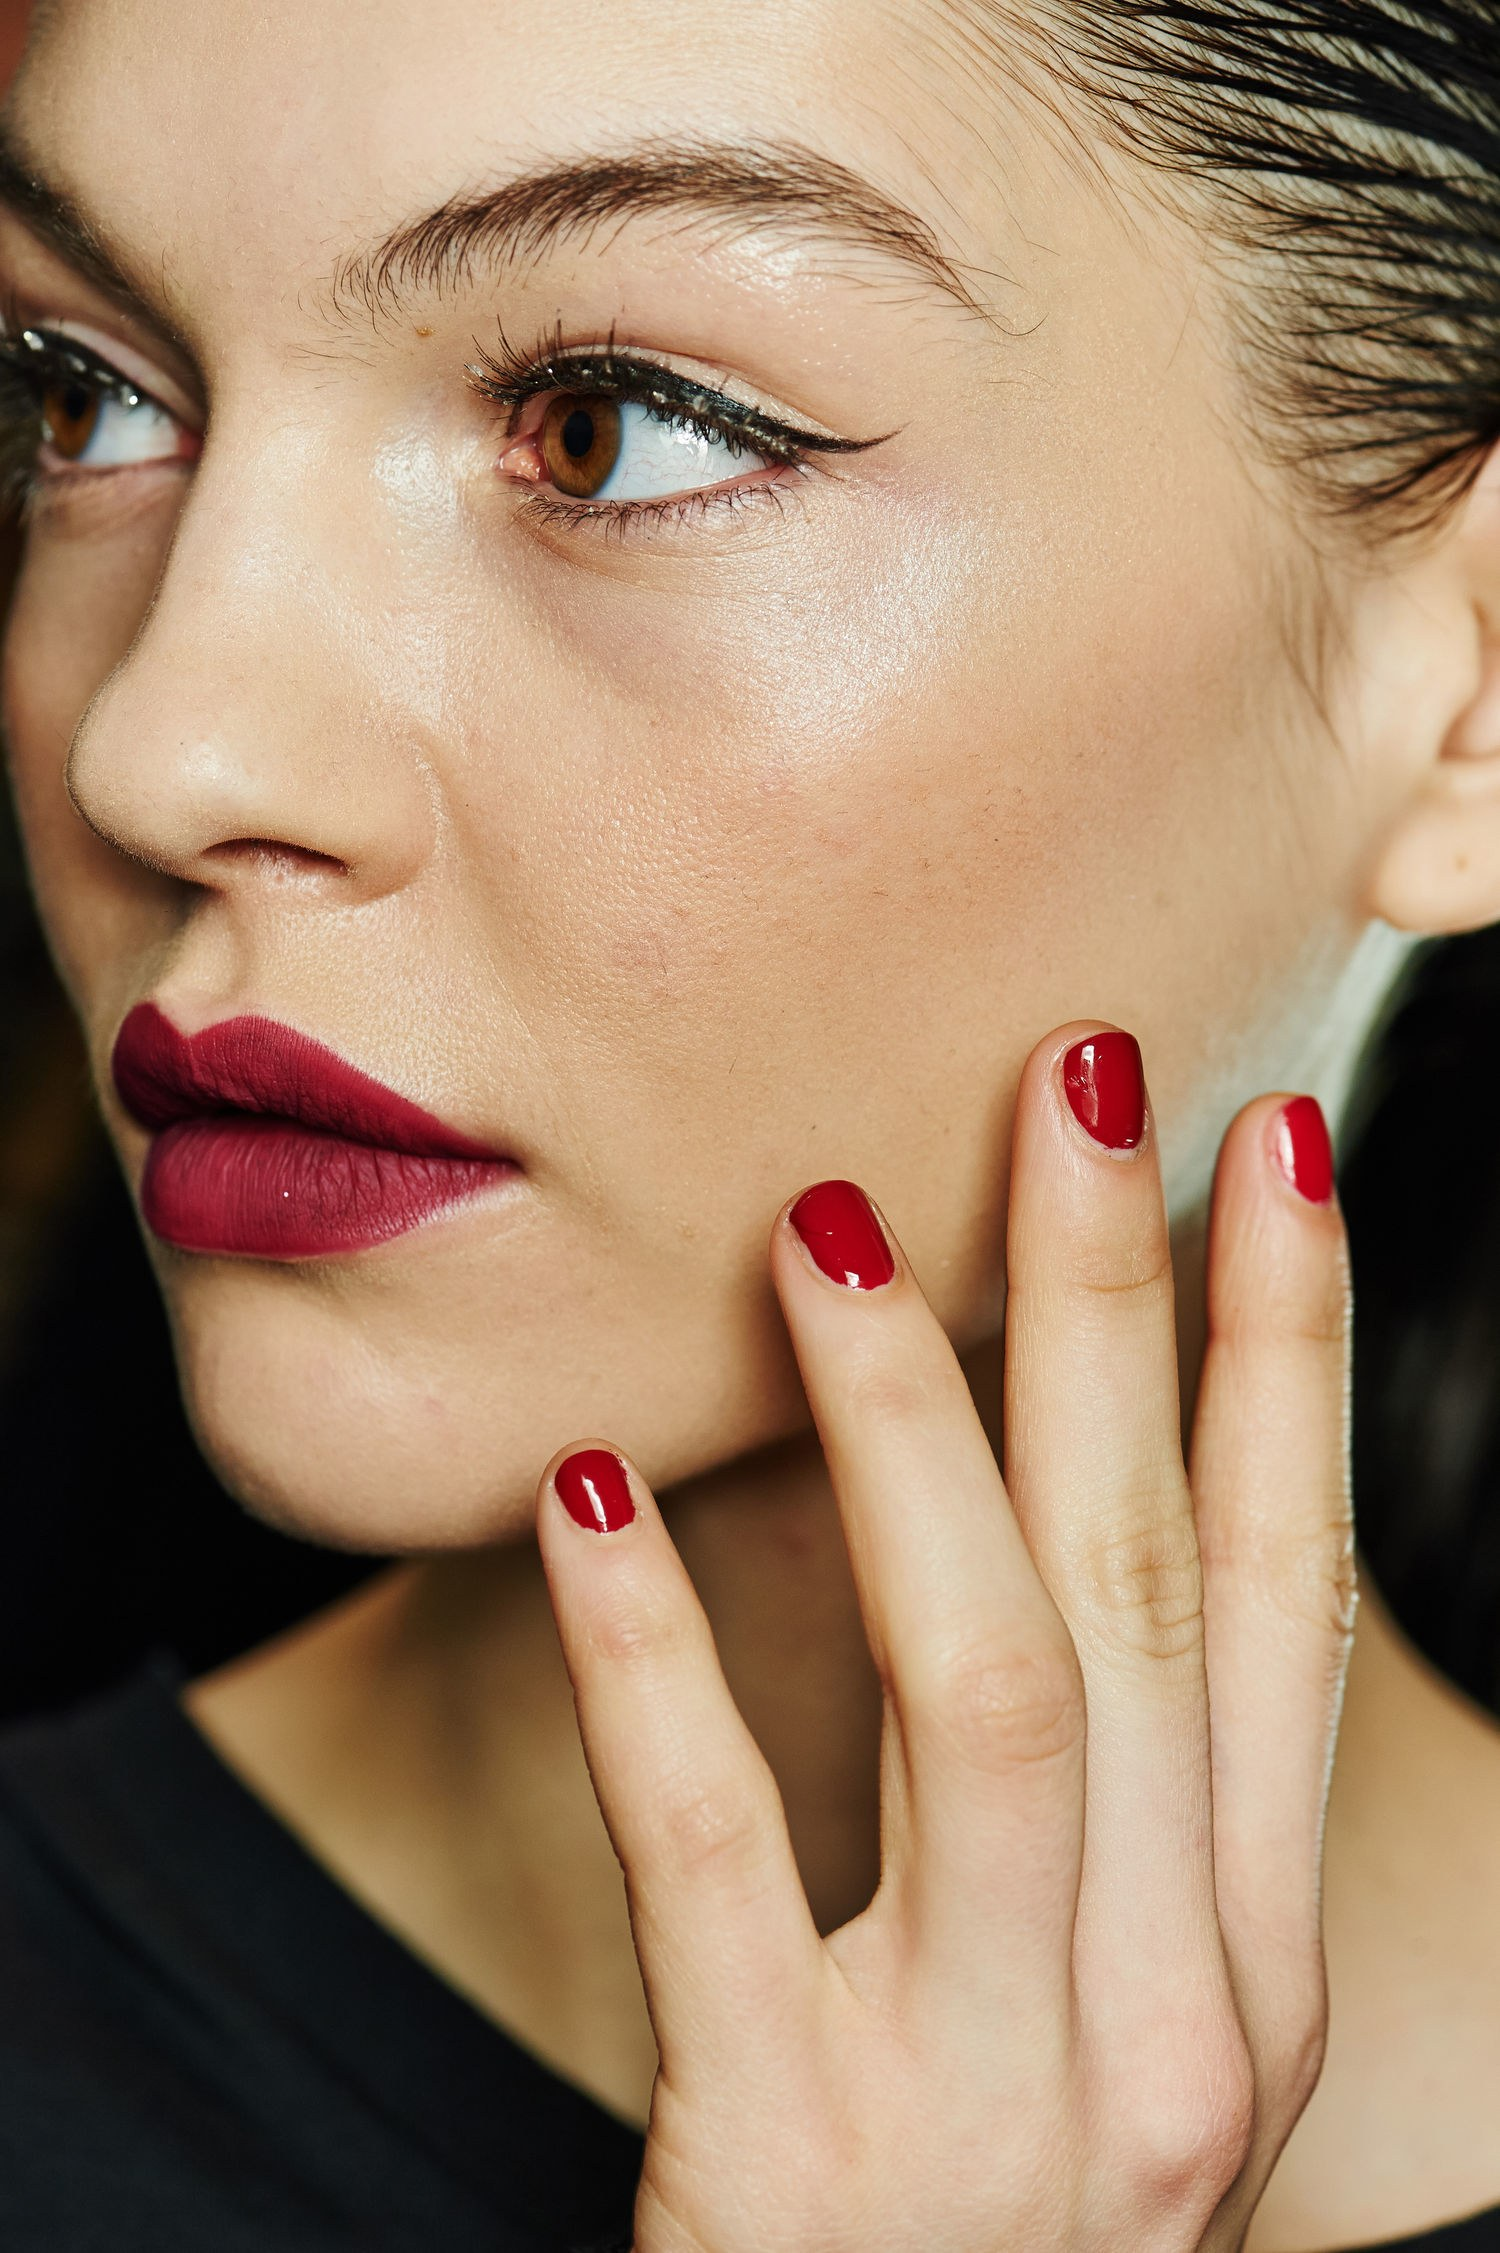 makeup-ideas-style-what-to-wear-newyearseve-nye-holiday-outfits-winter-black-eyeliner-red.jpg